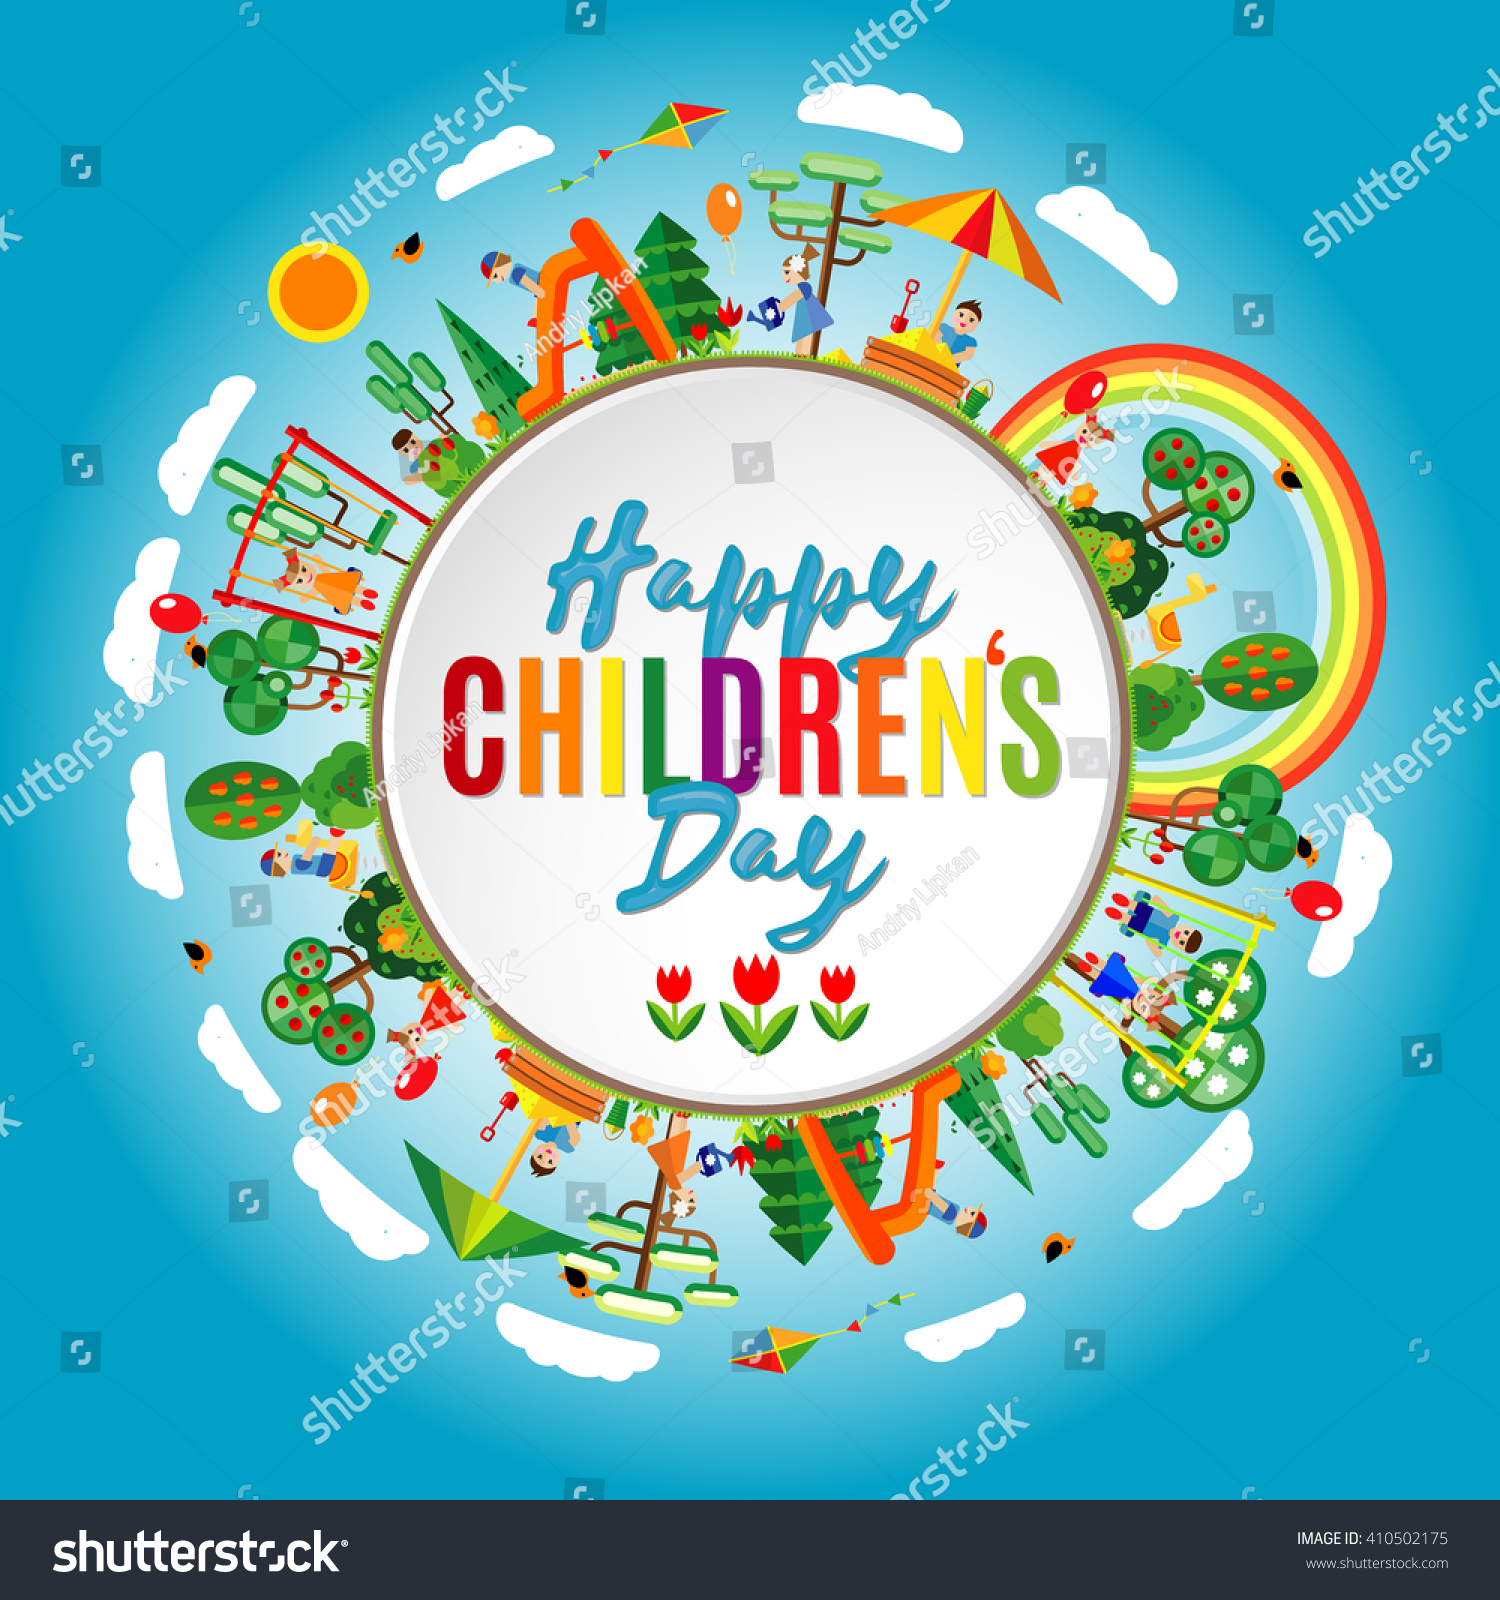 happy childrens day background vector illustration stock